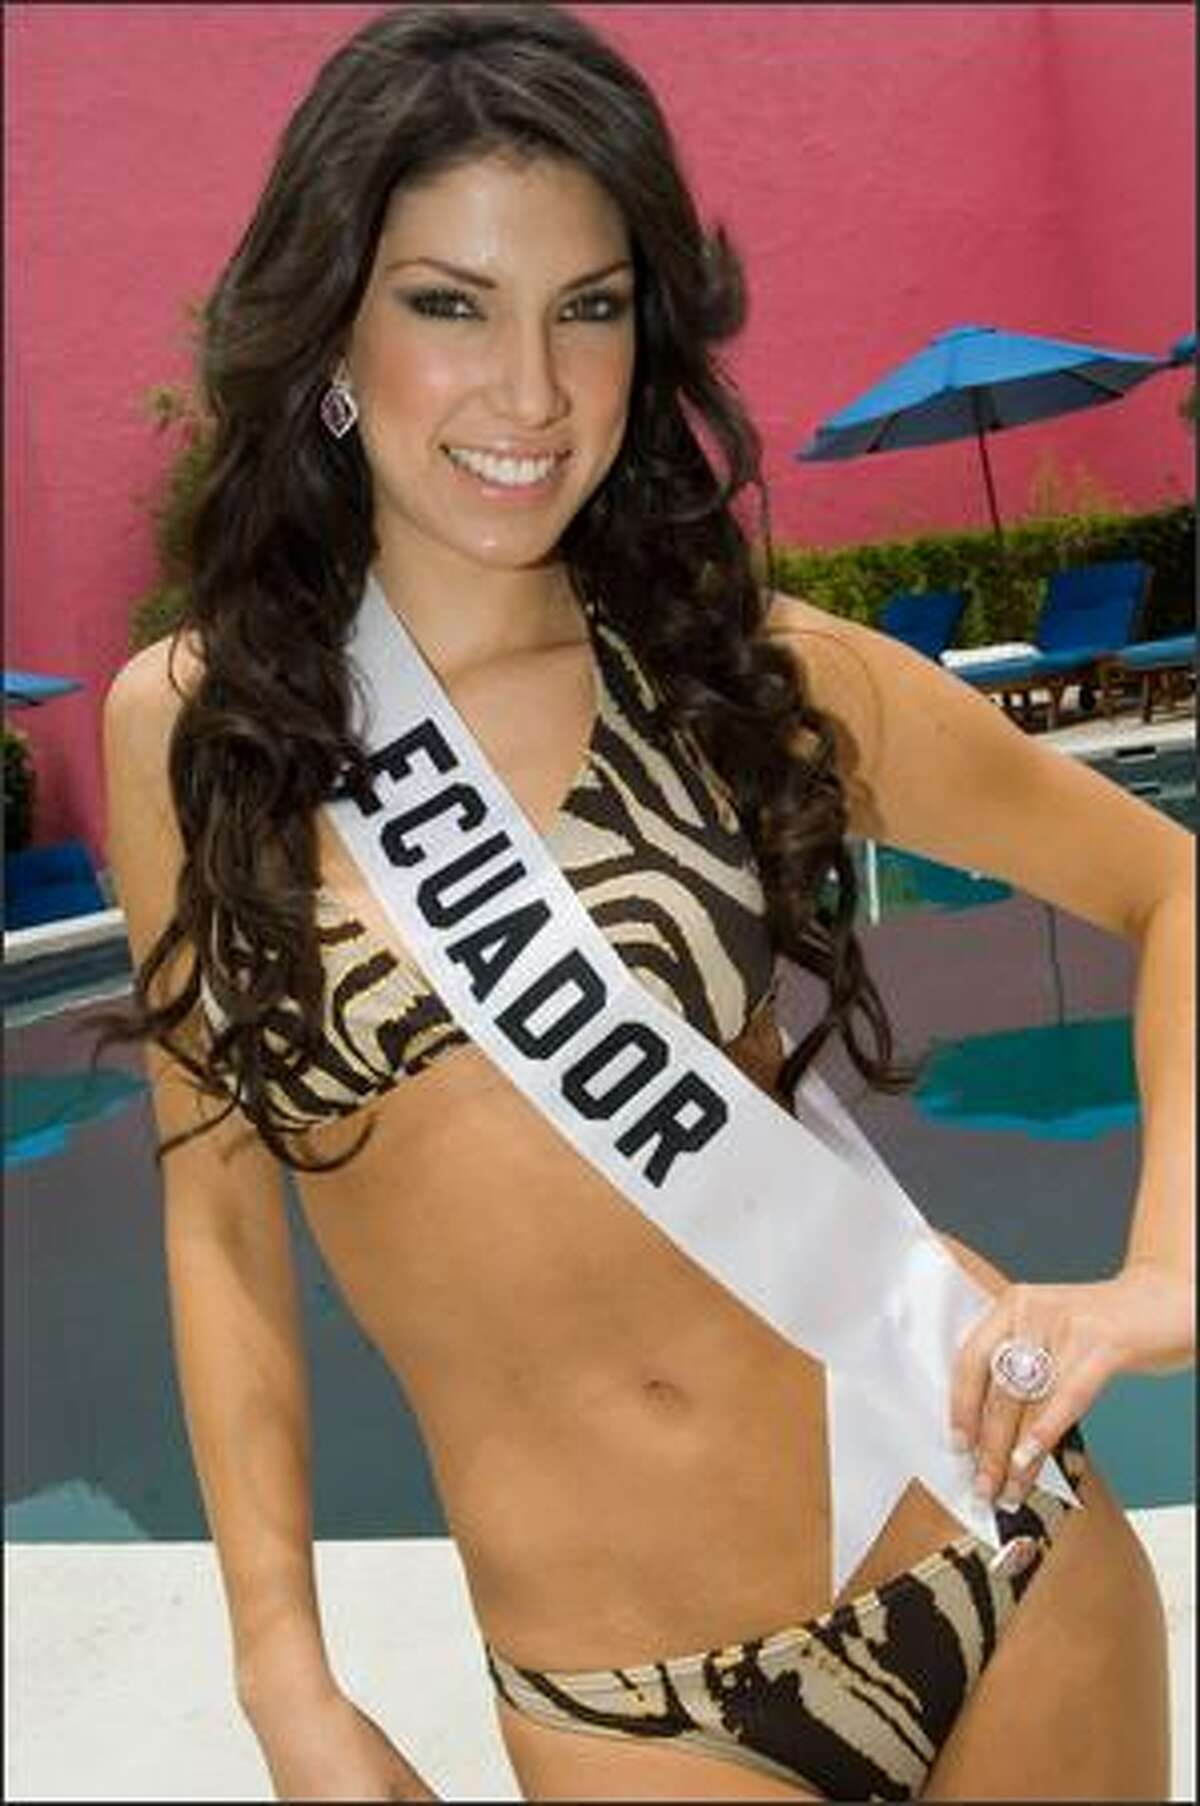 Maria Lugina Cabezas Andrada, Miss Ecuador 2007, poses in her BSC Swimwear Thailand swimsuit during registration and fittings for the Miss Universe 2007 competition at the Camino Real Mexico in Mexico City on May 1.